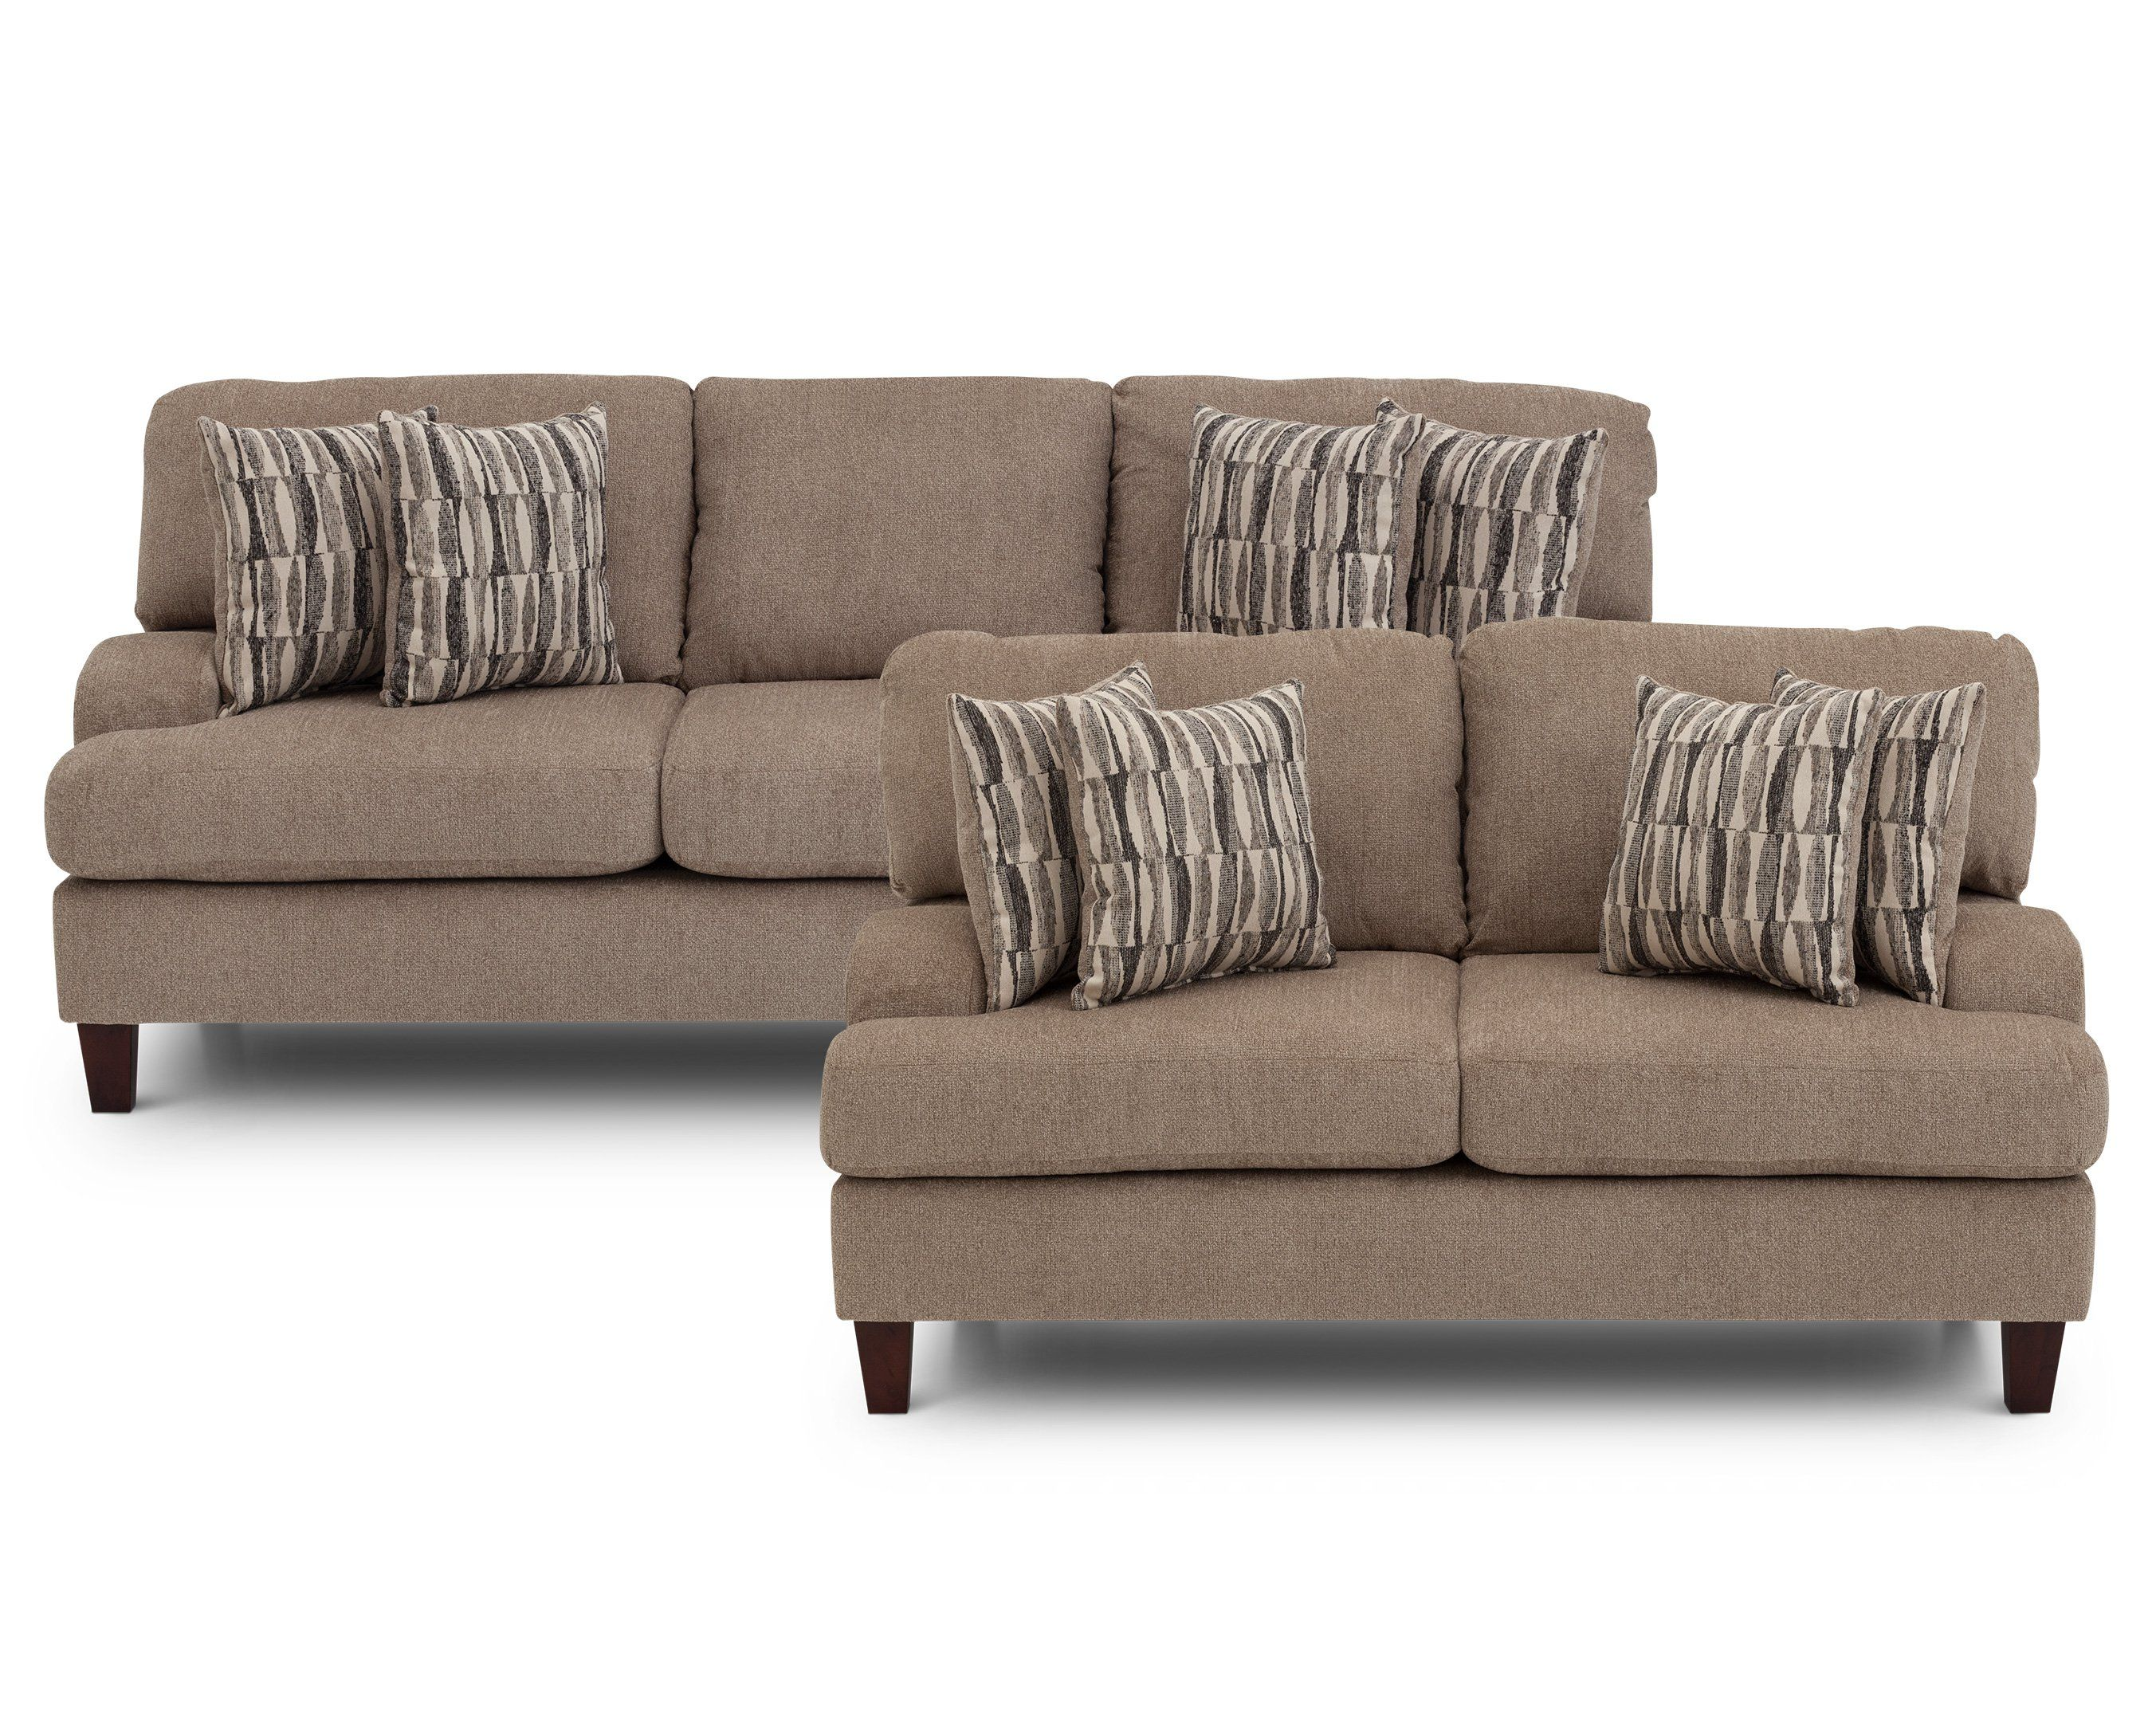 Aries Sofa Group 929 499 With